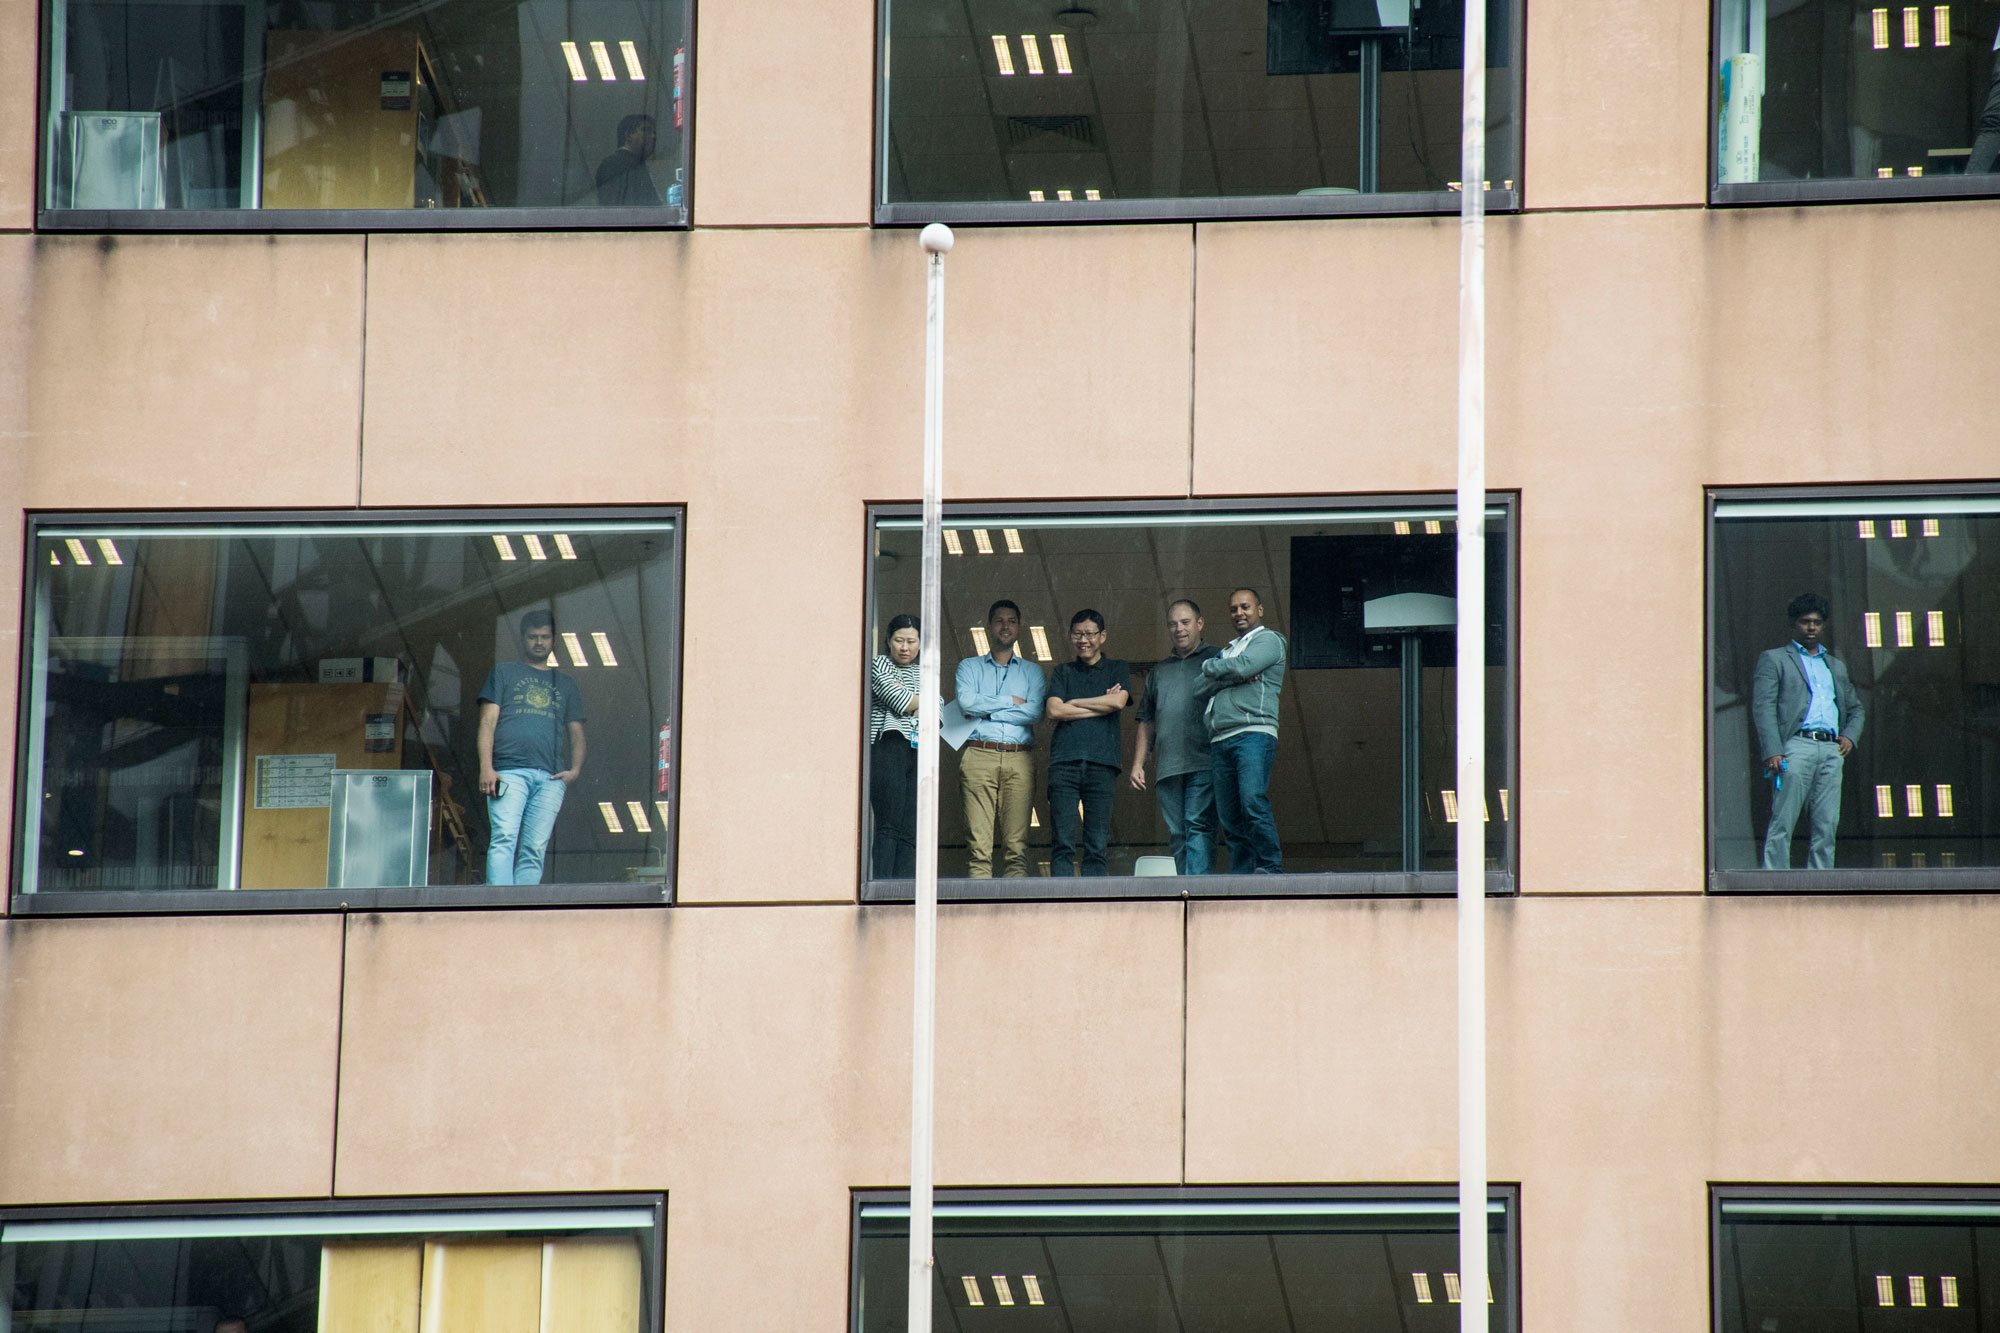 Office workers above 55 Collins Street look down on Melbourne's Global Climate Strike. Photo: Liam Petterson